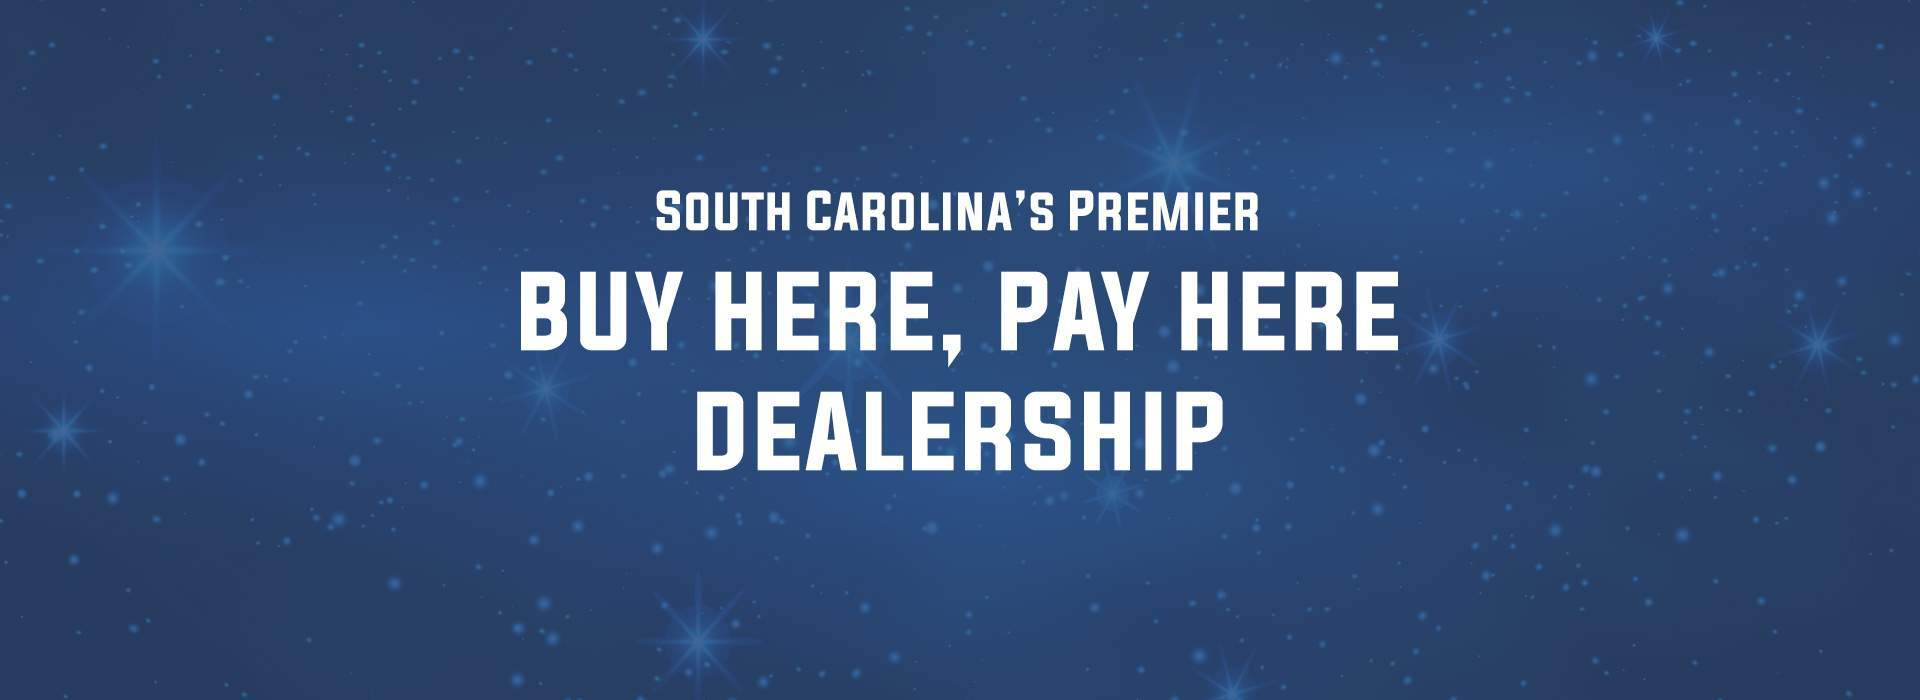 South Carolina's Premier Buy Here, Pay Here Dealership